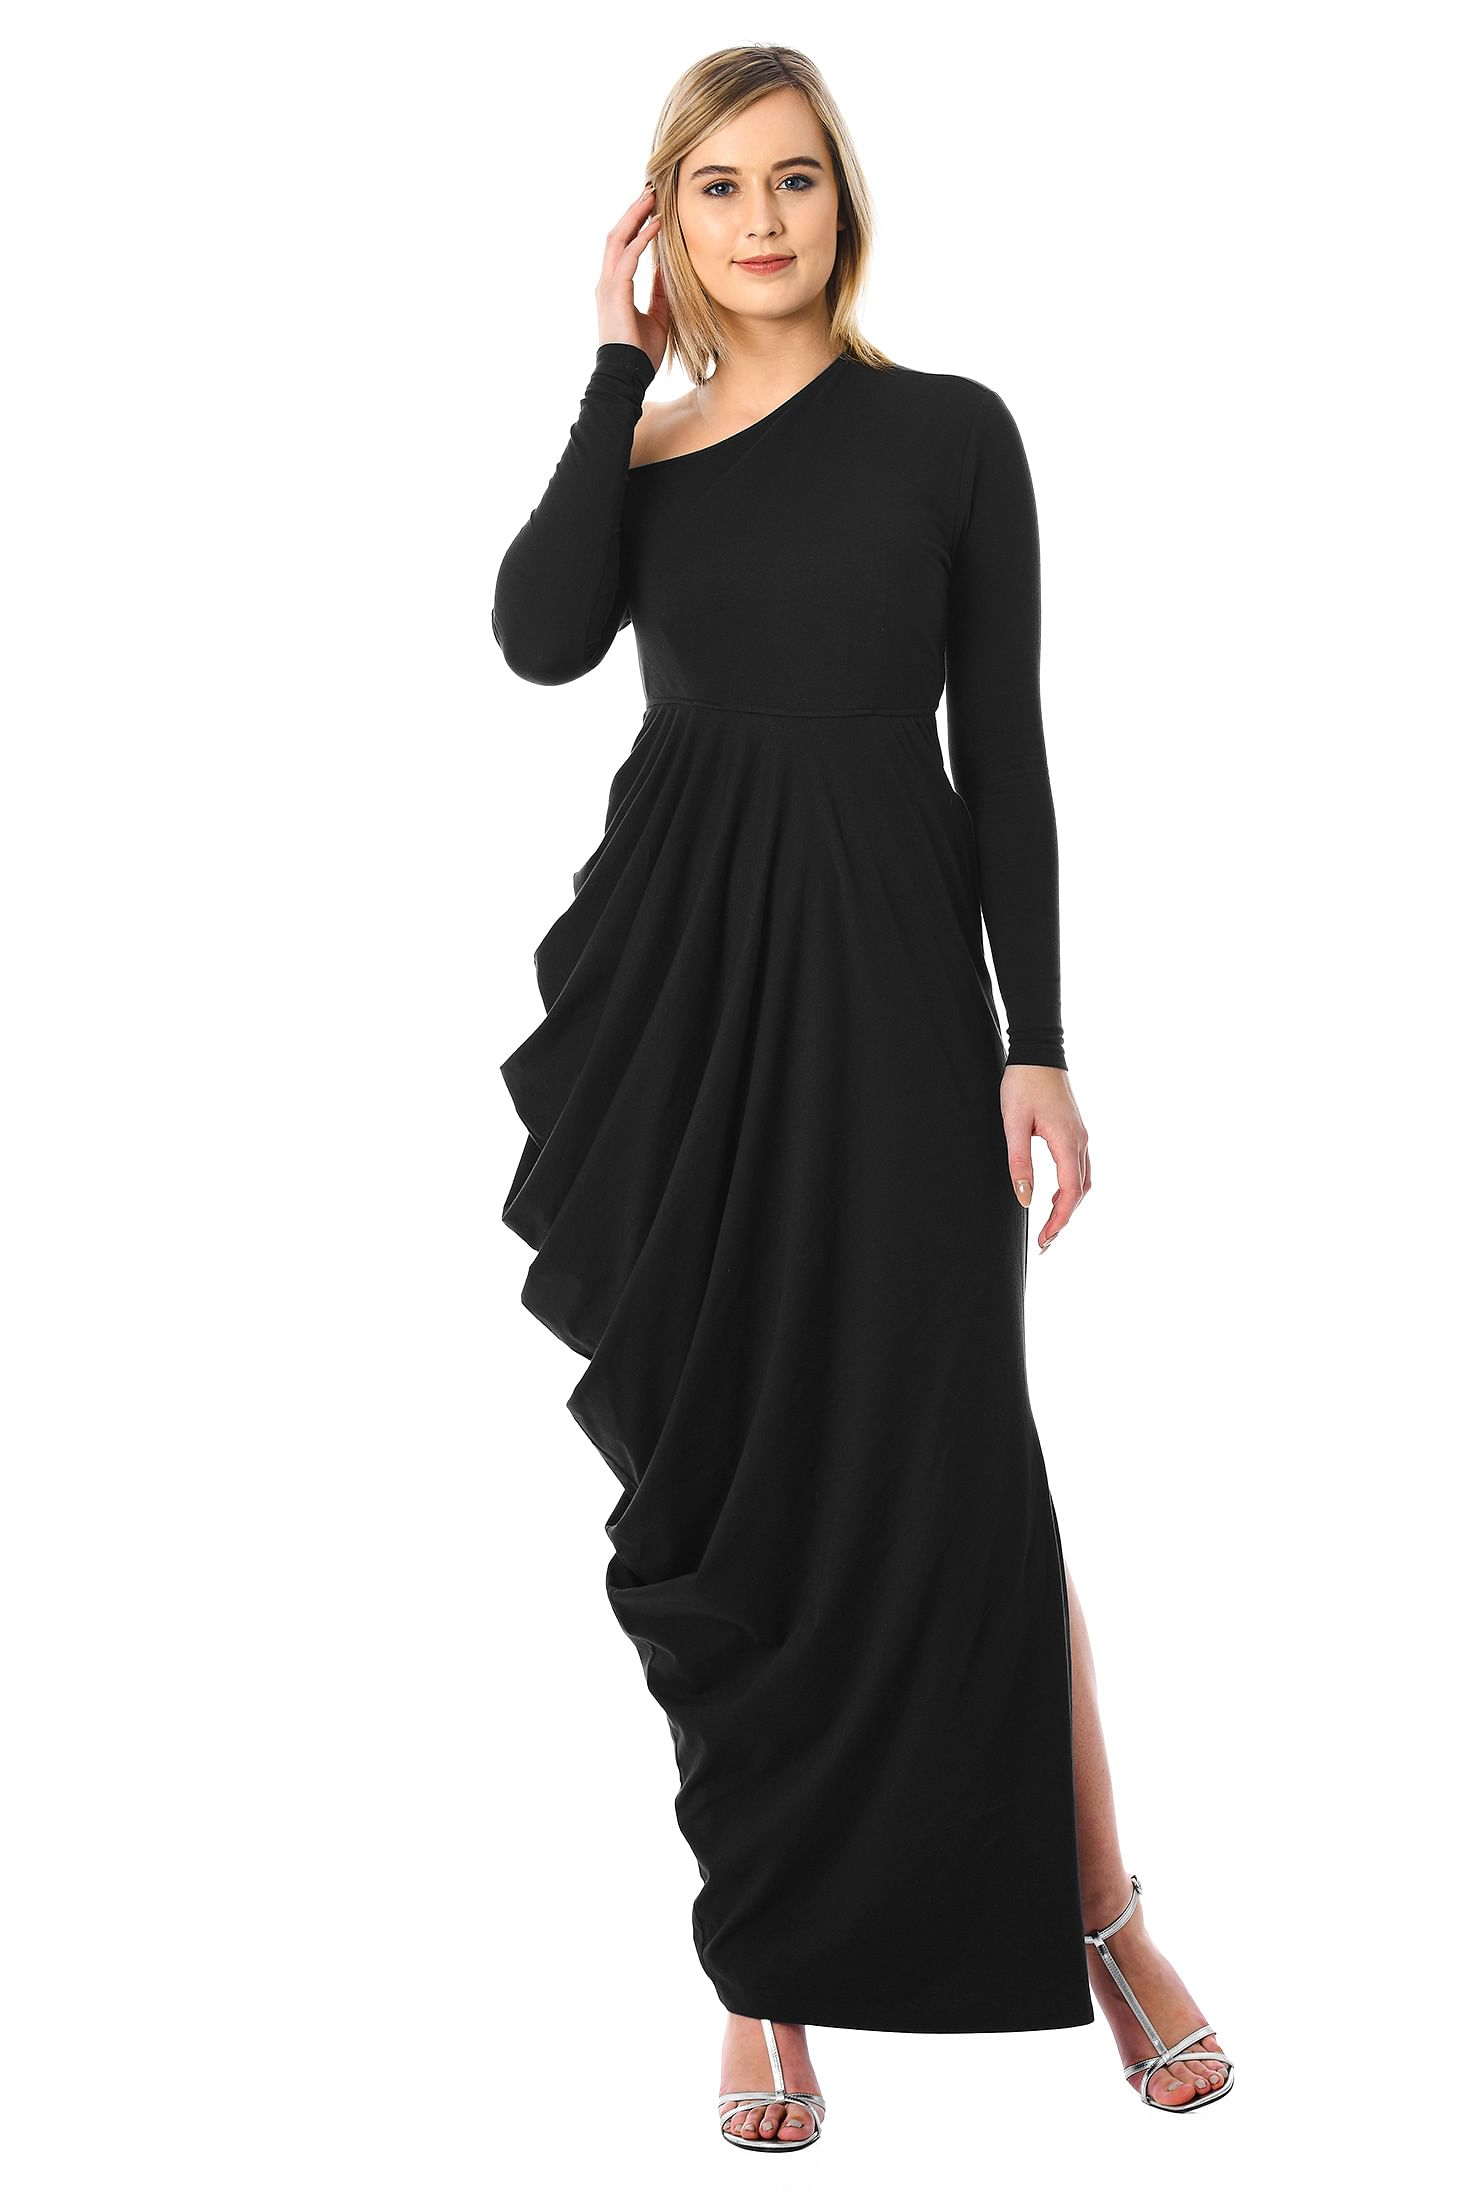 eShakti Women's One-shoulder cotton knit draped maxi dress